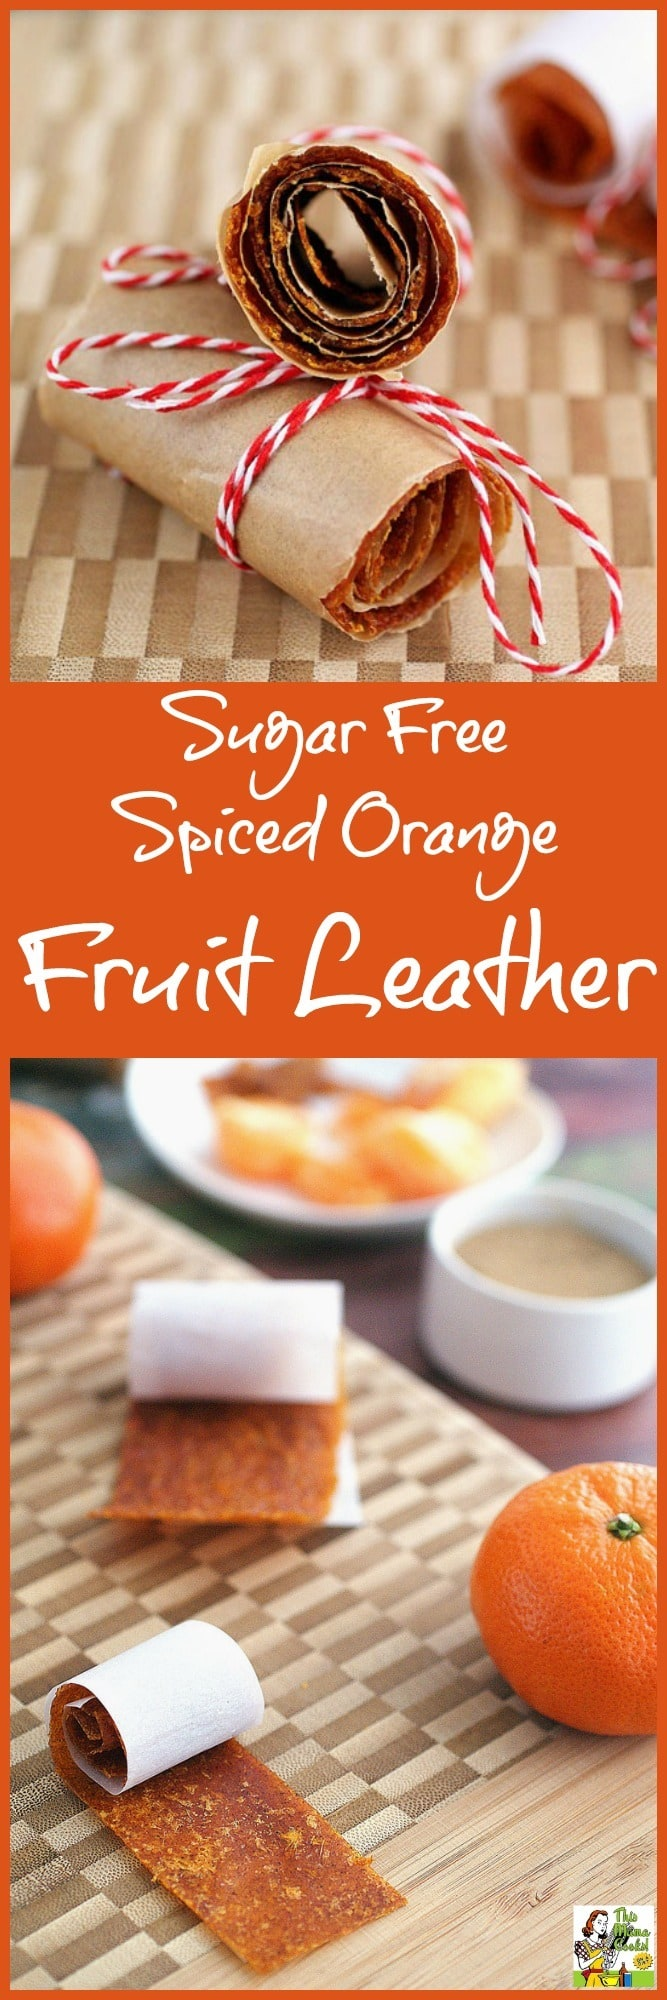 Make this Sugar Free Spiced Orange Fruit Leather recipe as an alternative to store bought foot roll up candy snacks. Click to learn how to make this easy fruit leather recipe in a fruit hydrator or oven.